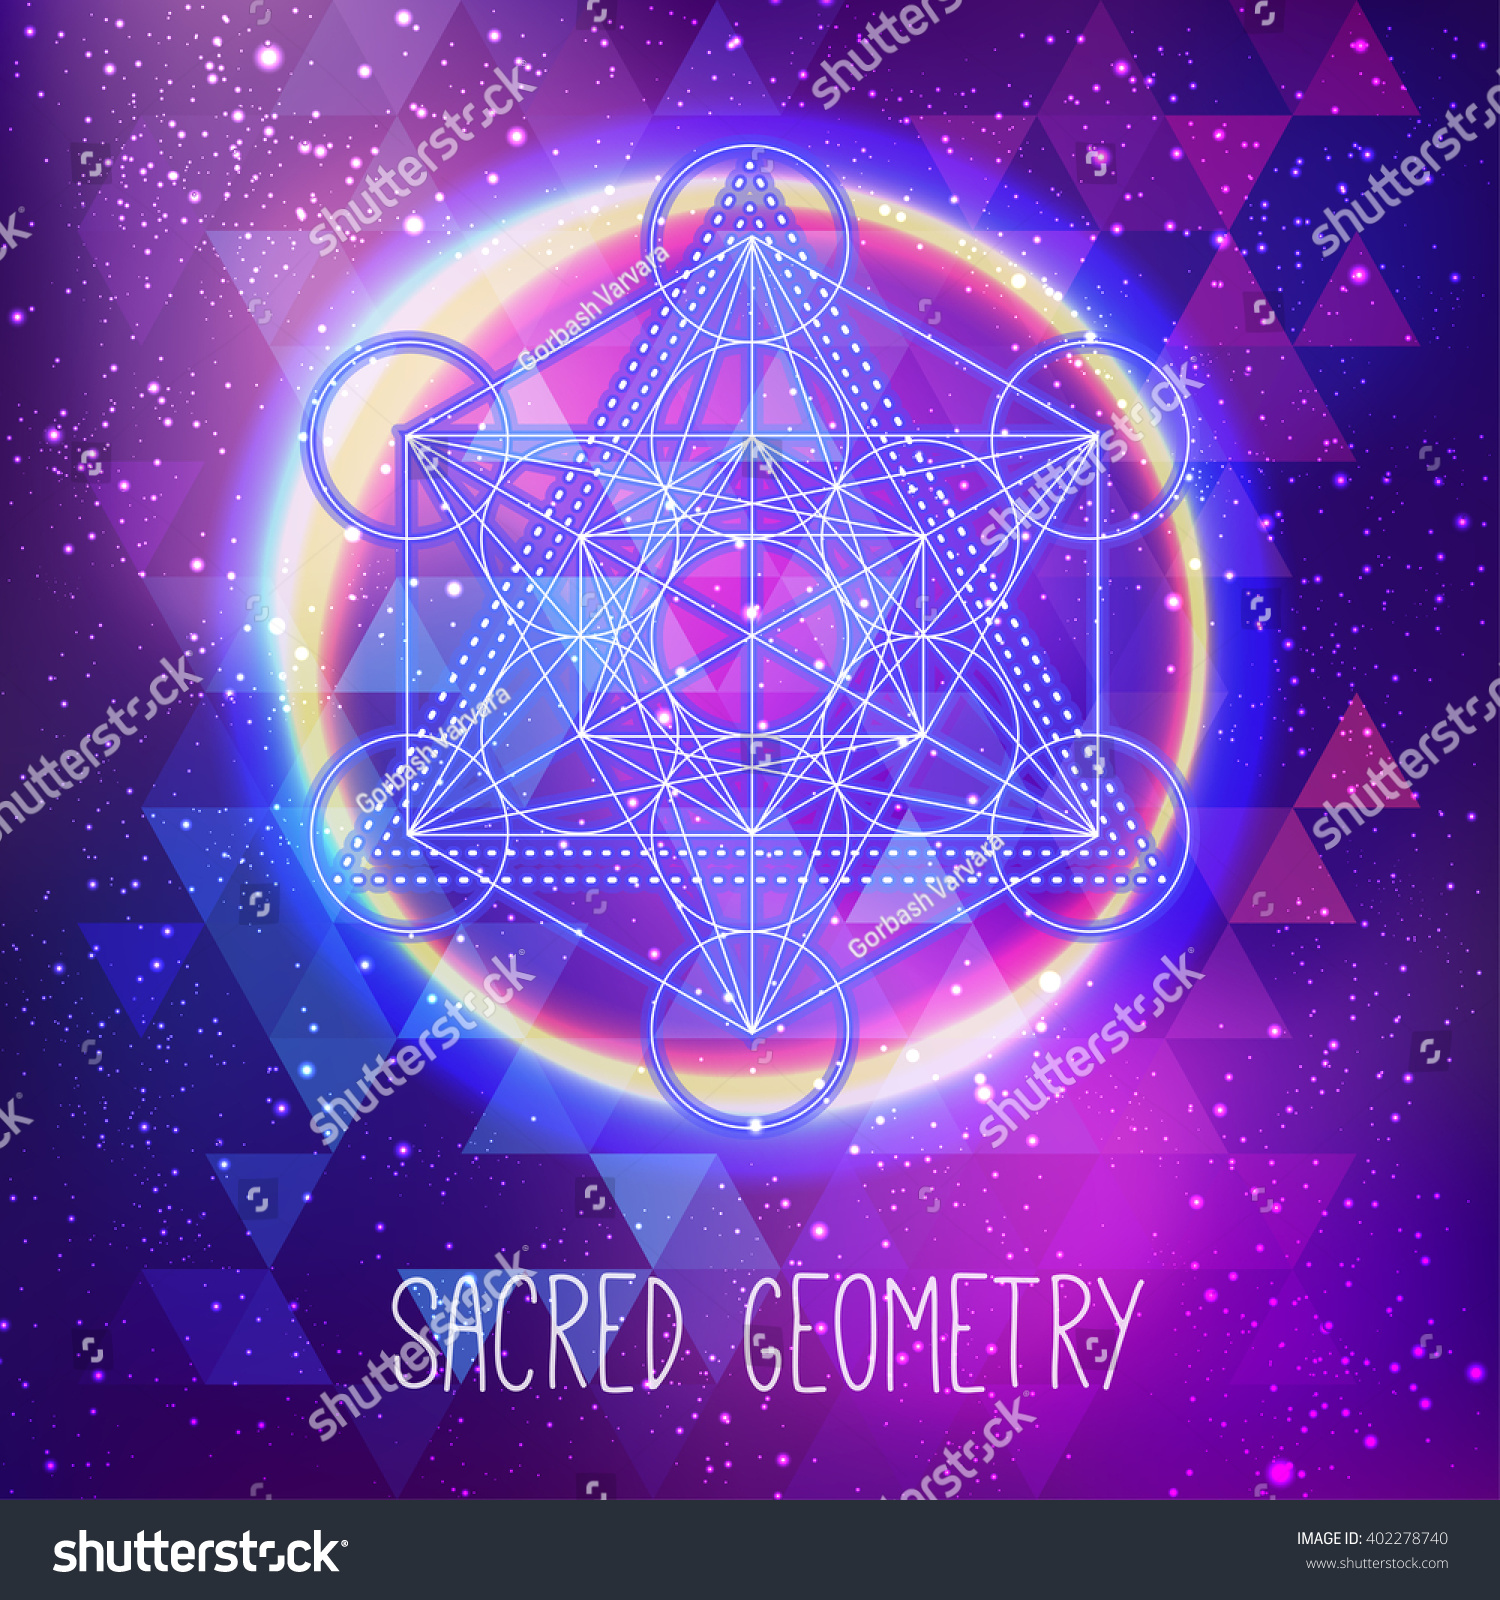 metatrons cube flower life sacred geometry stock vector 402278740 shutterstock. Black Bedroom Furniture Sets. Home Design Ideas